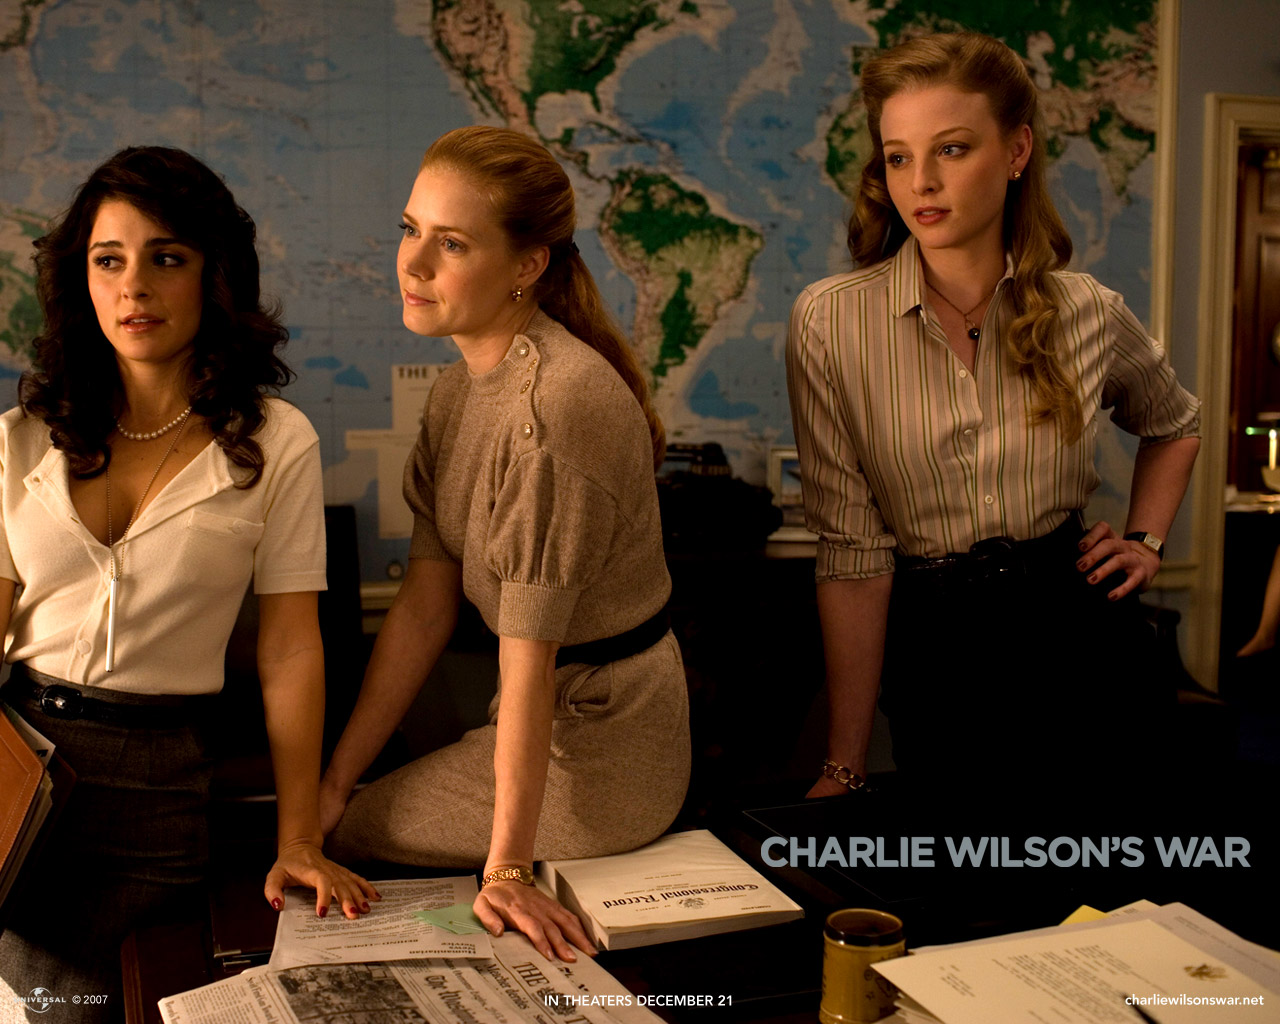 Charlie Wilson's War Starring The Charlies Angels